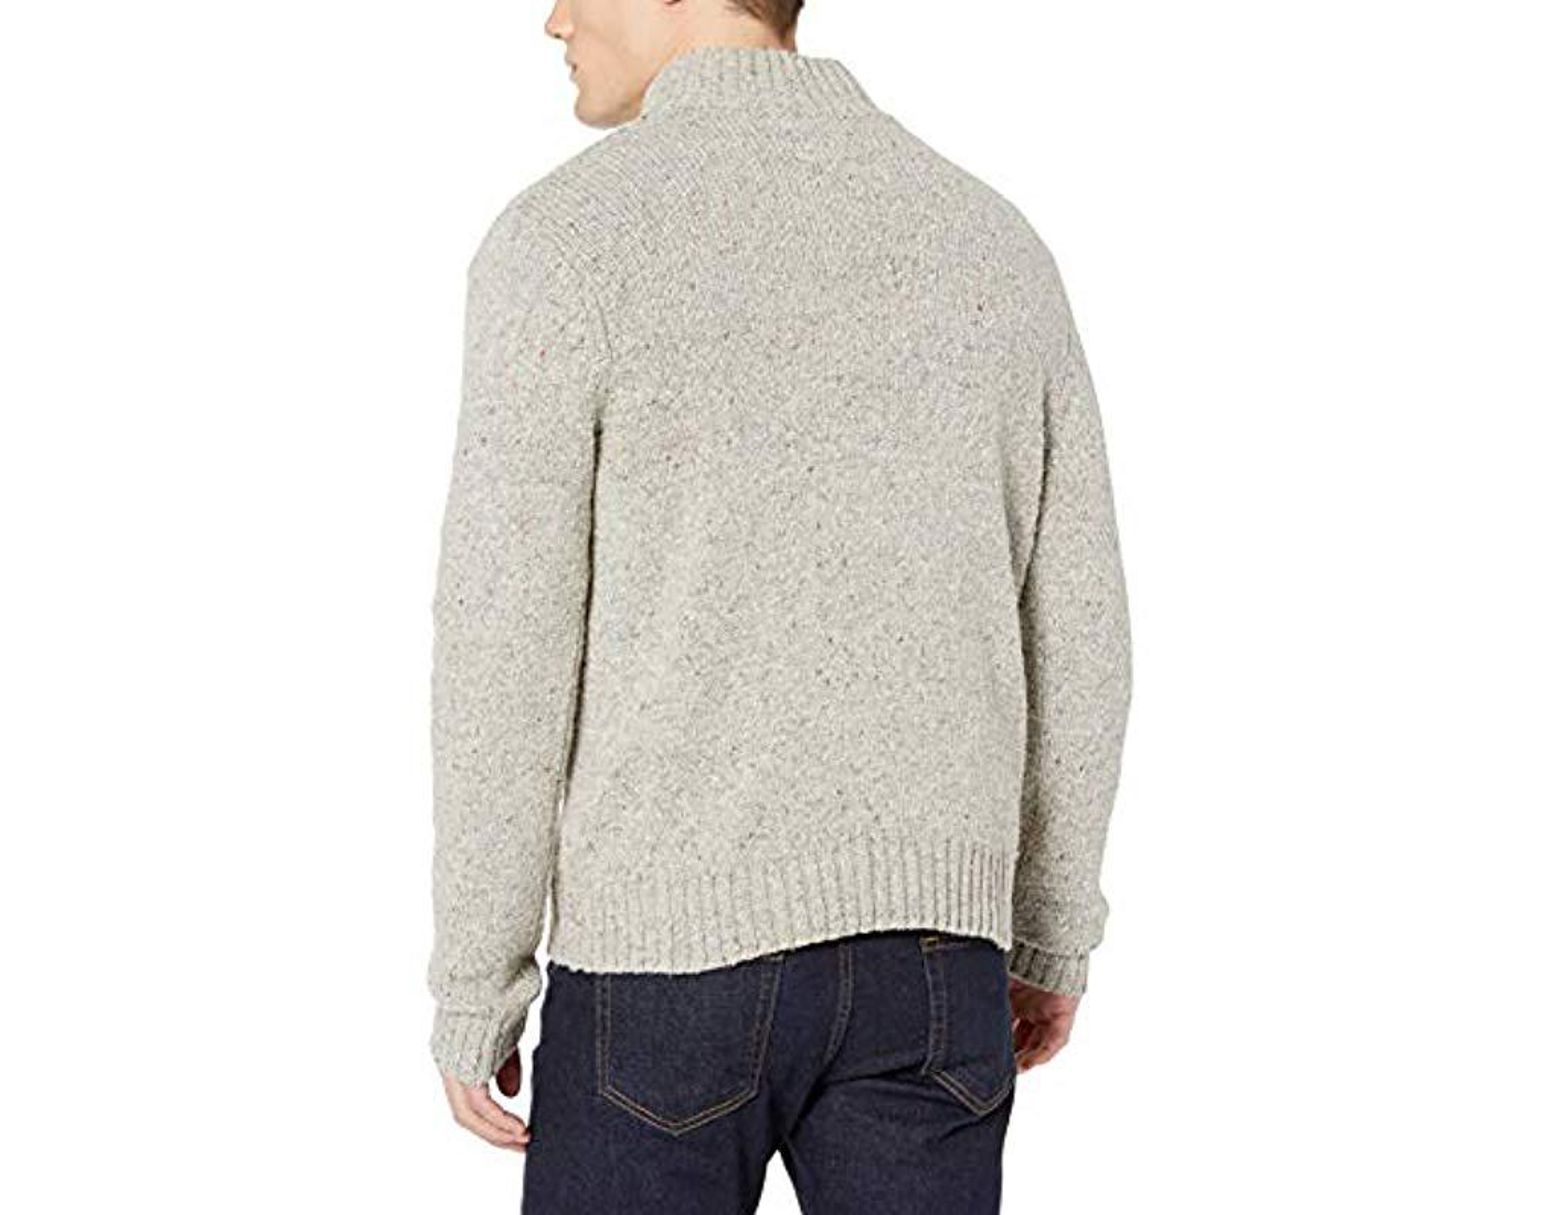 Lucky brand donnegal 1 2 button mock neck sweater in gray for men save 40 lyst